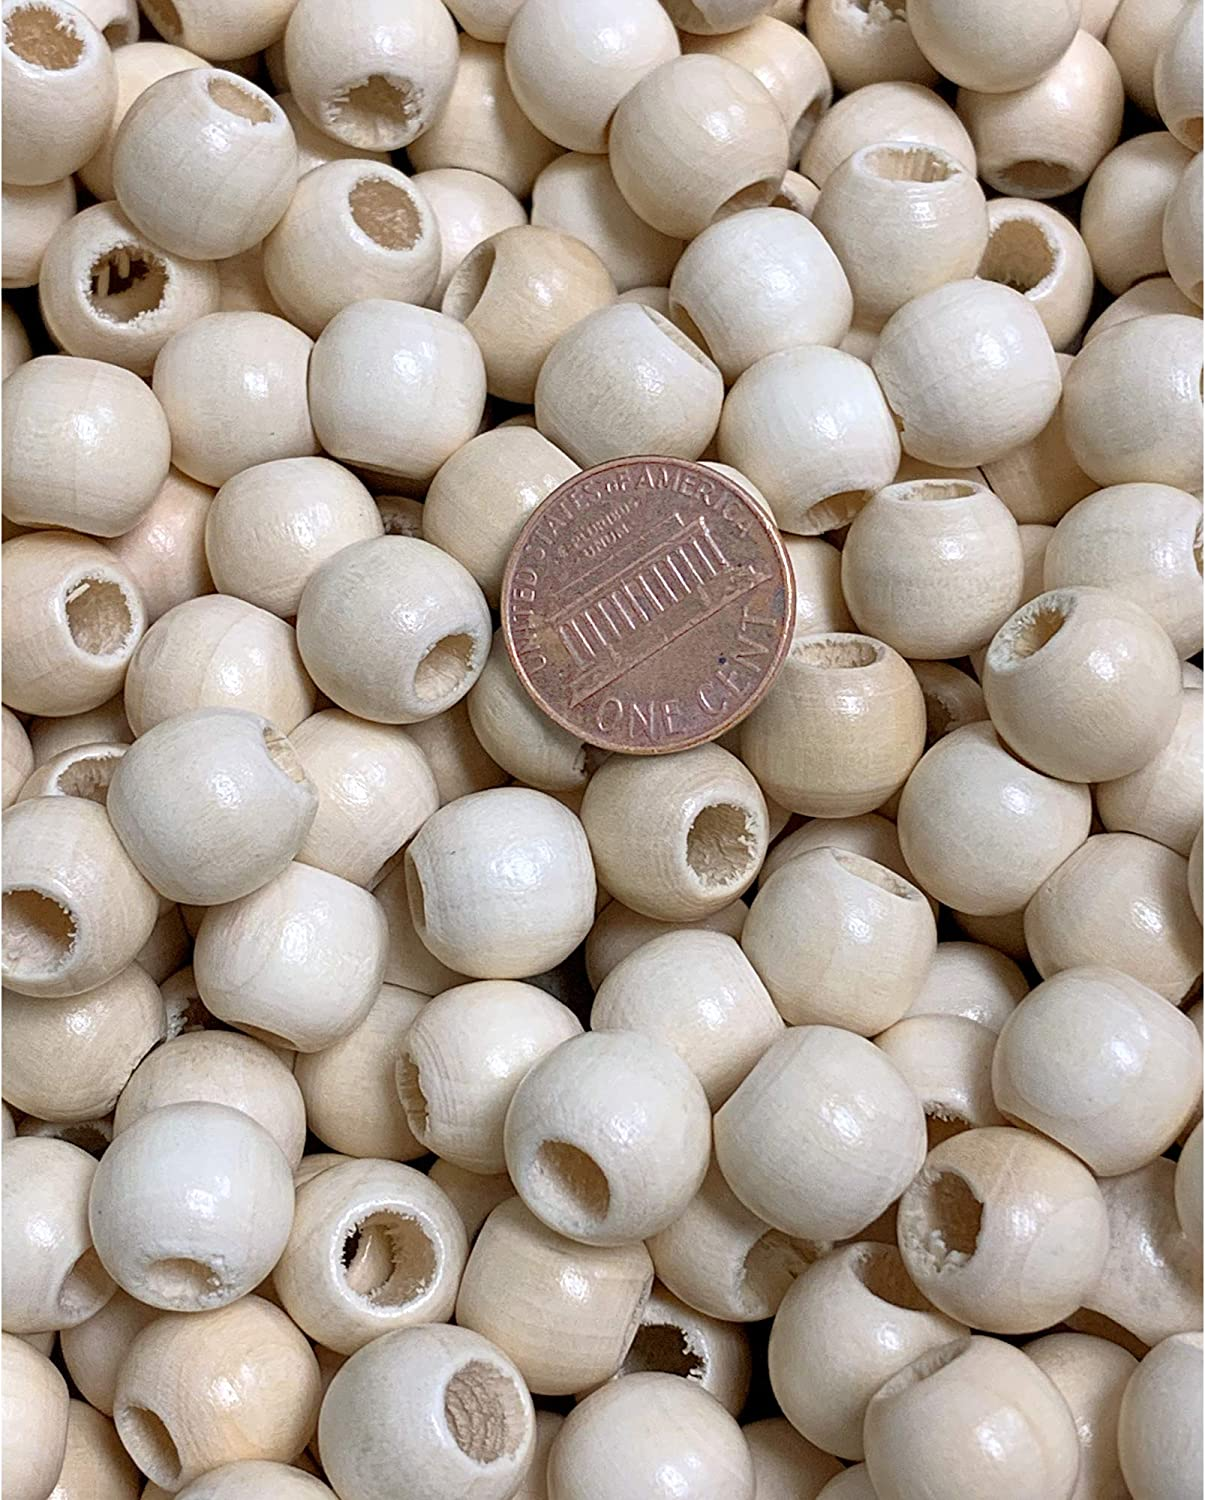 200 Pack 12mm Natural Wood Beads Matte Finish for Macrame Crafts Education